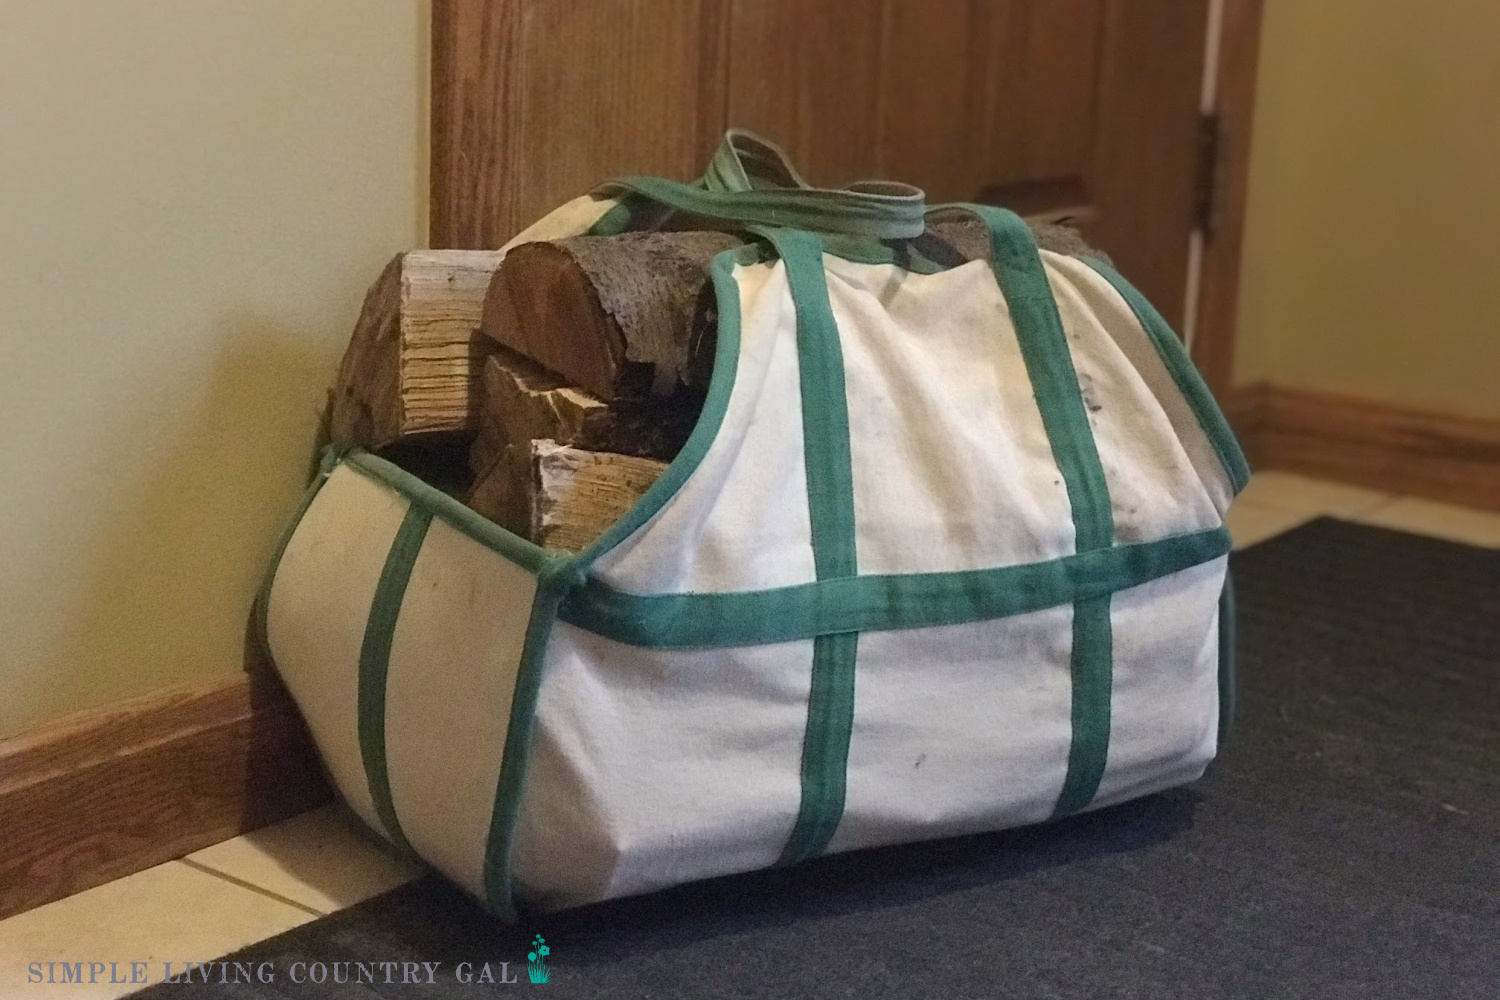 Wood bag a great gift for simple living